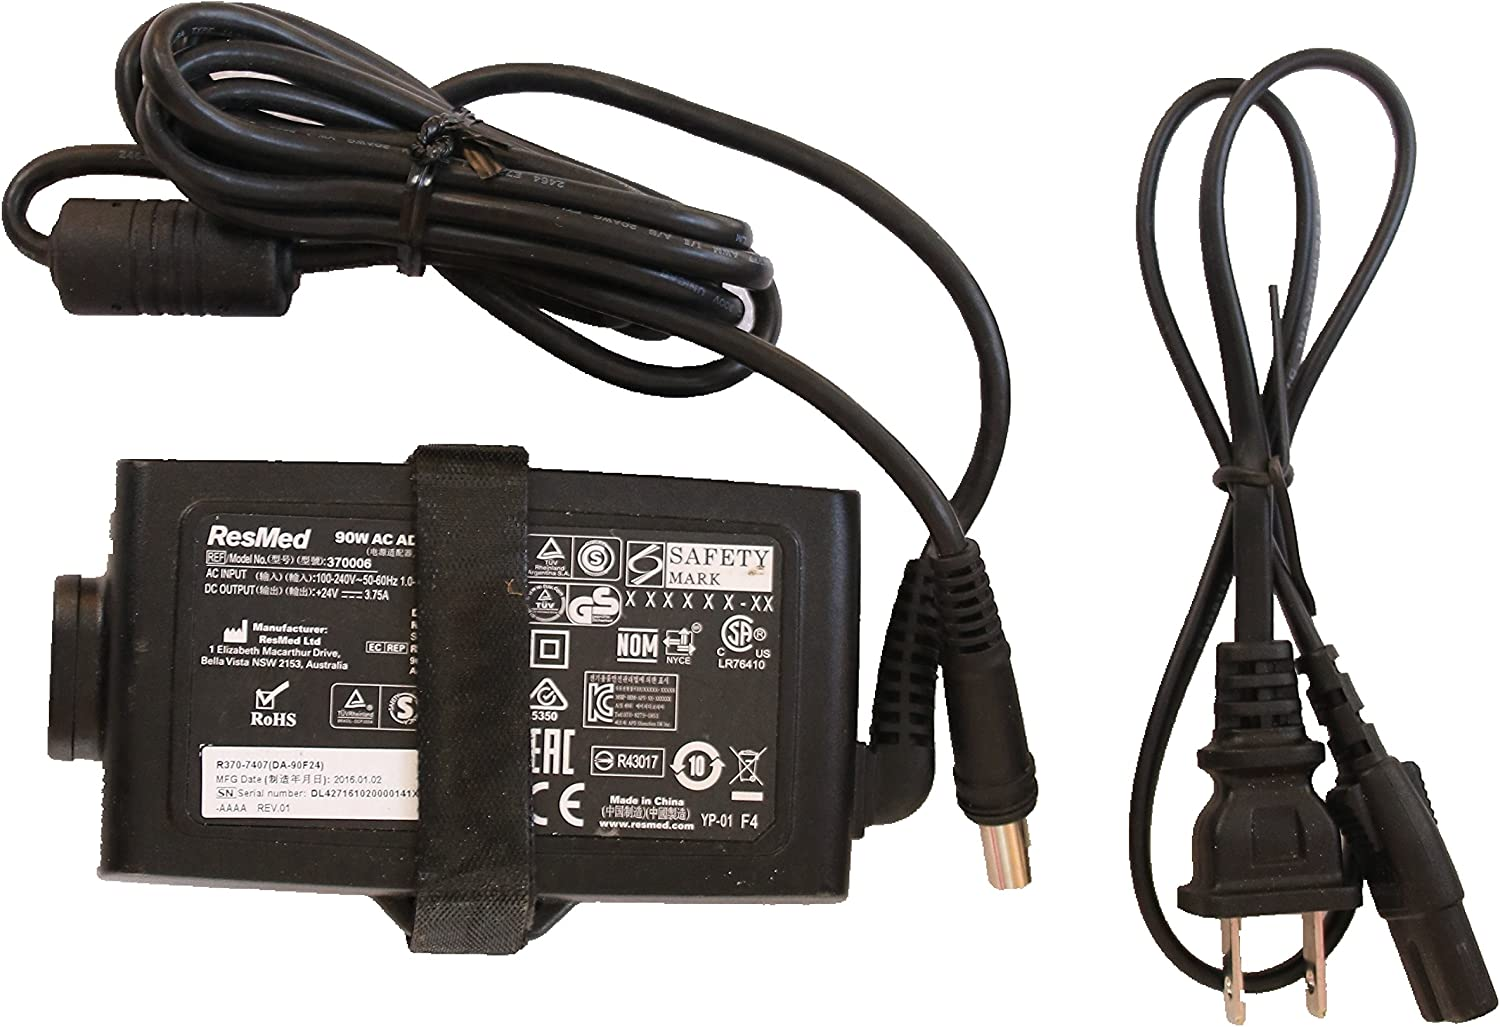 AC Adapter for Resmed S10 Series ResMed Airsense 10 Air Sense S10 AirCurve 10 Series CPAP and BiPAP Machines,90W Resmed S10 370001 Replacement Power Supply Cord Cable Charger